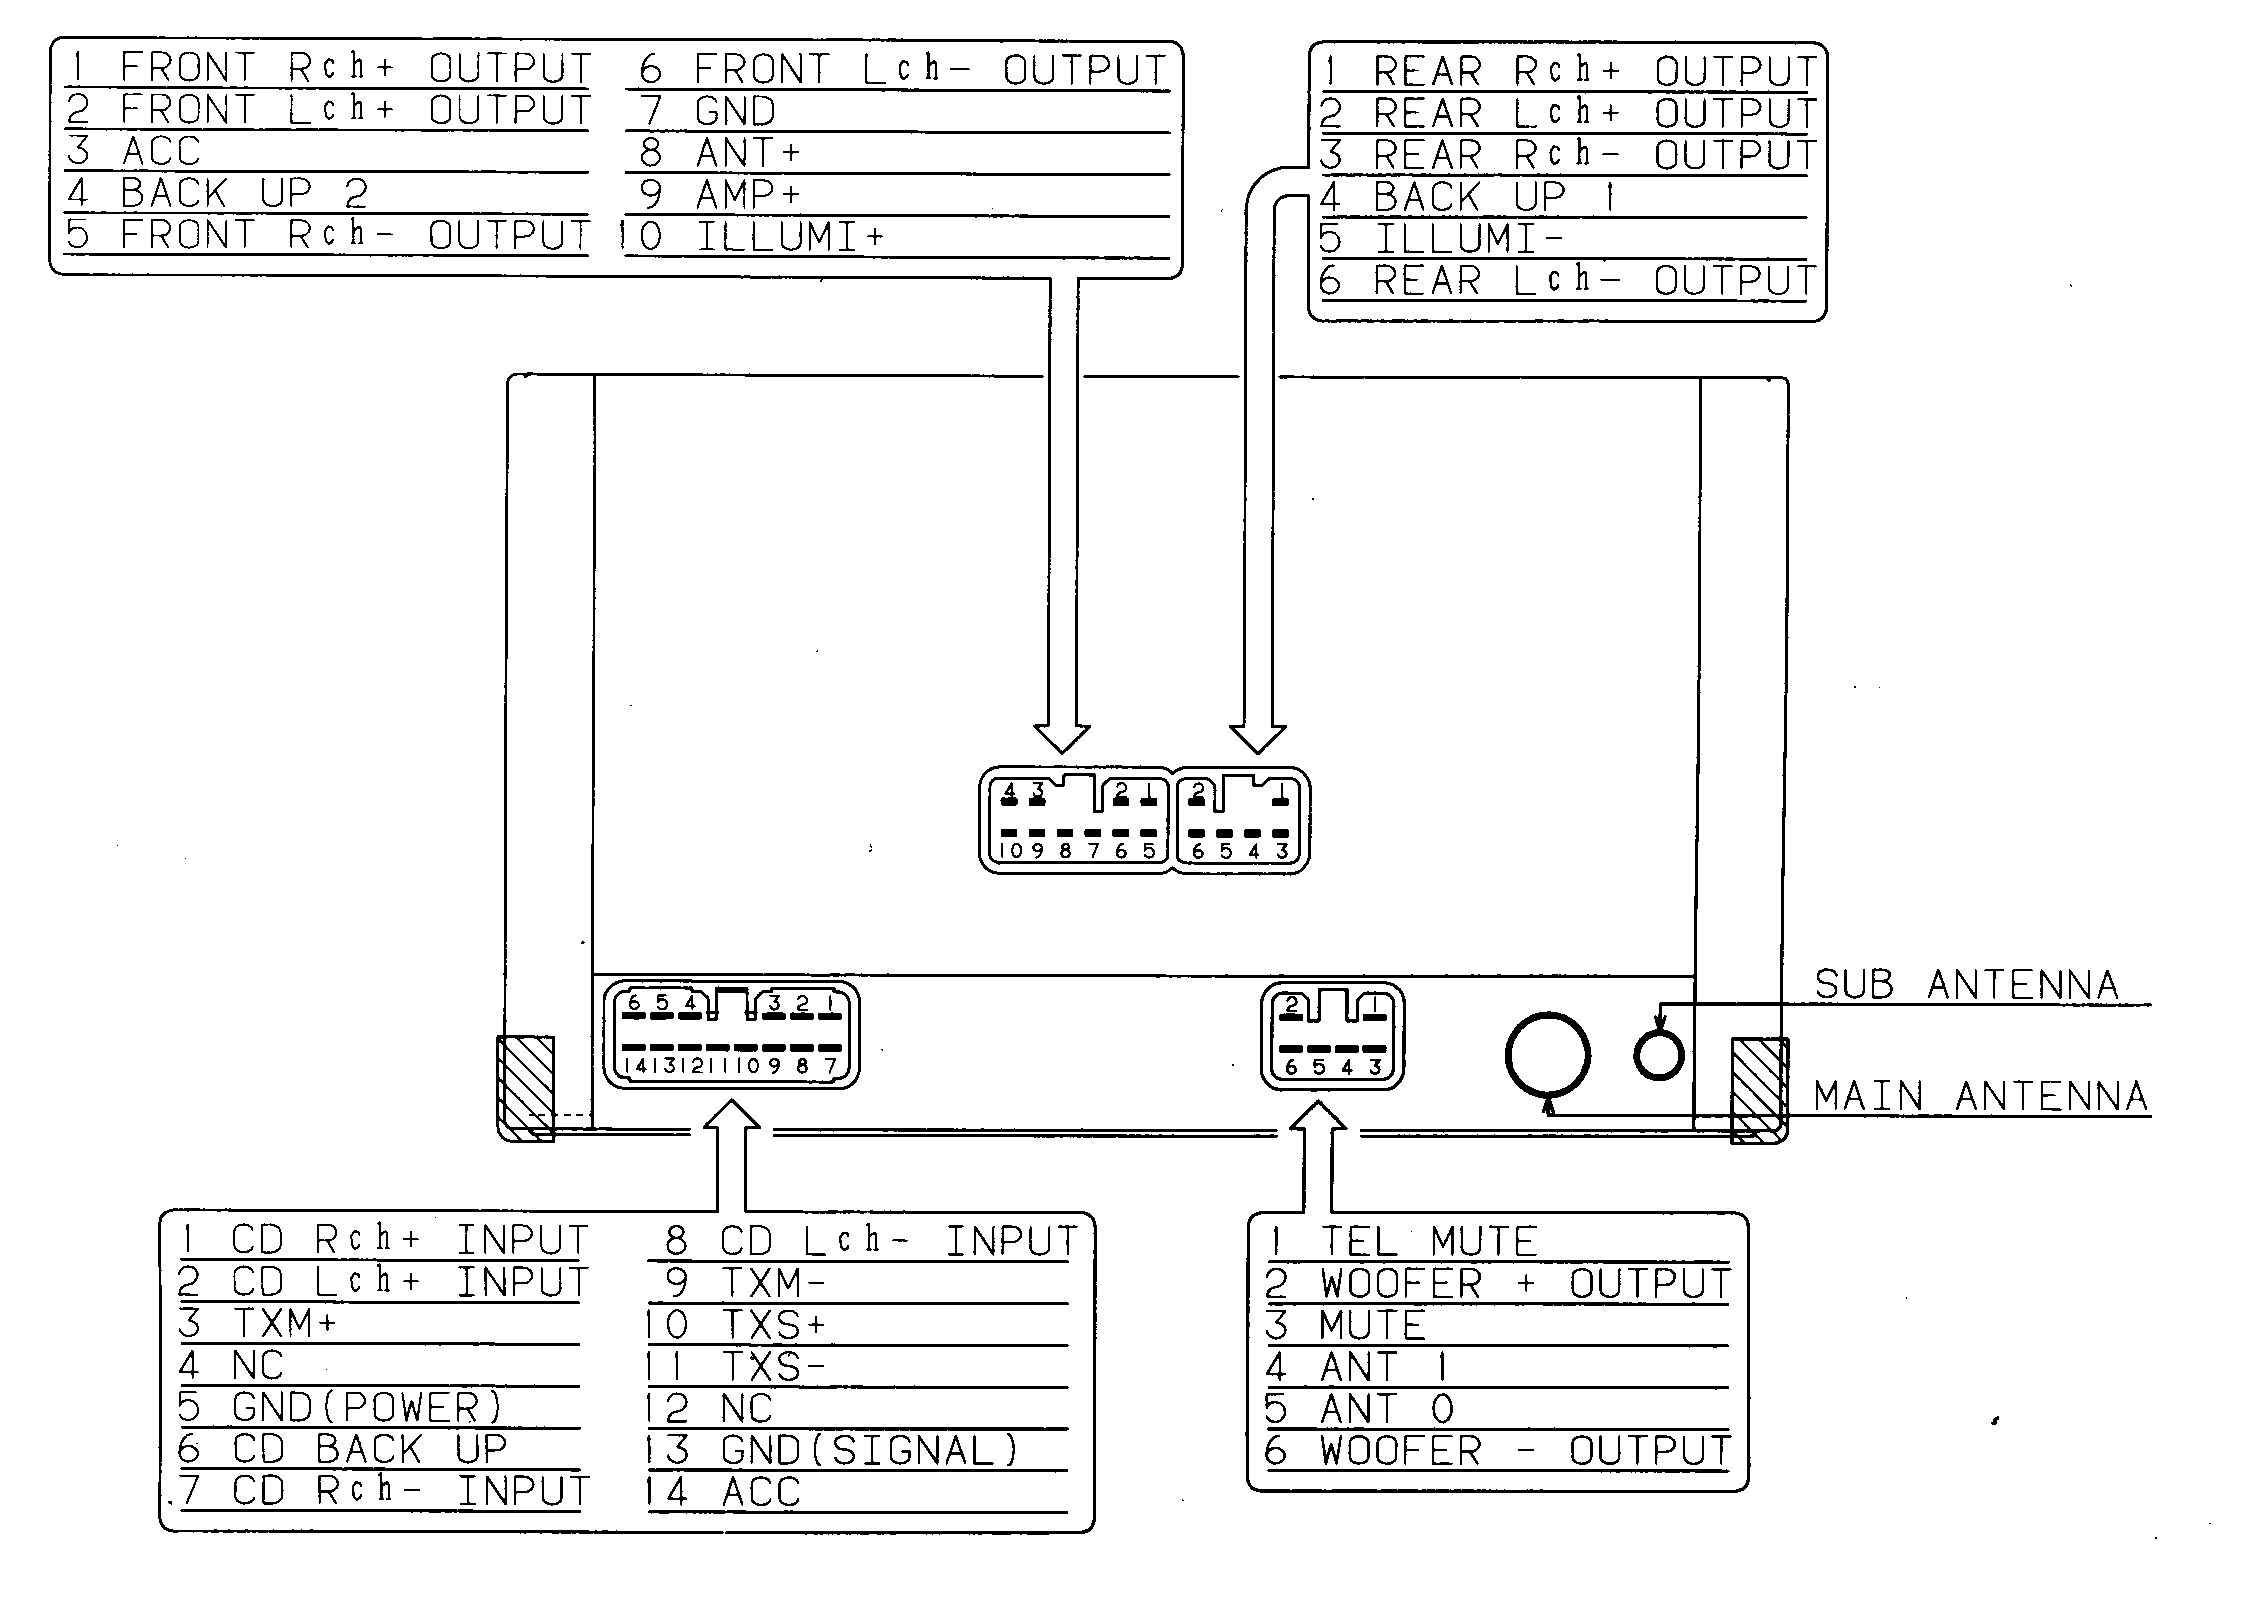 sanyo car stereo wiring diagram blog about wiring diagrams gmc sierra bose  stereo wiring diagram audio